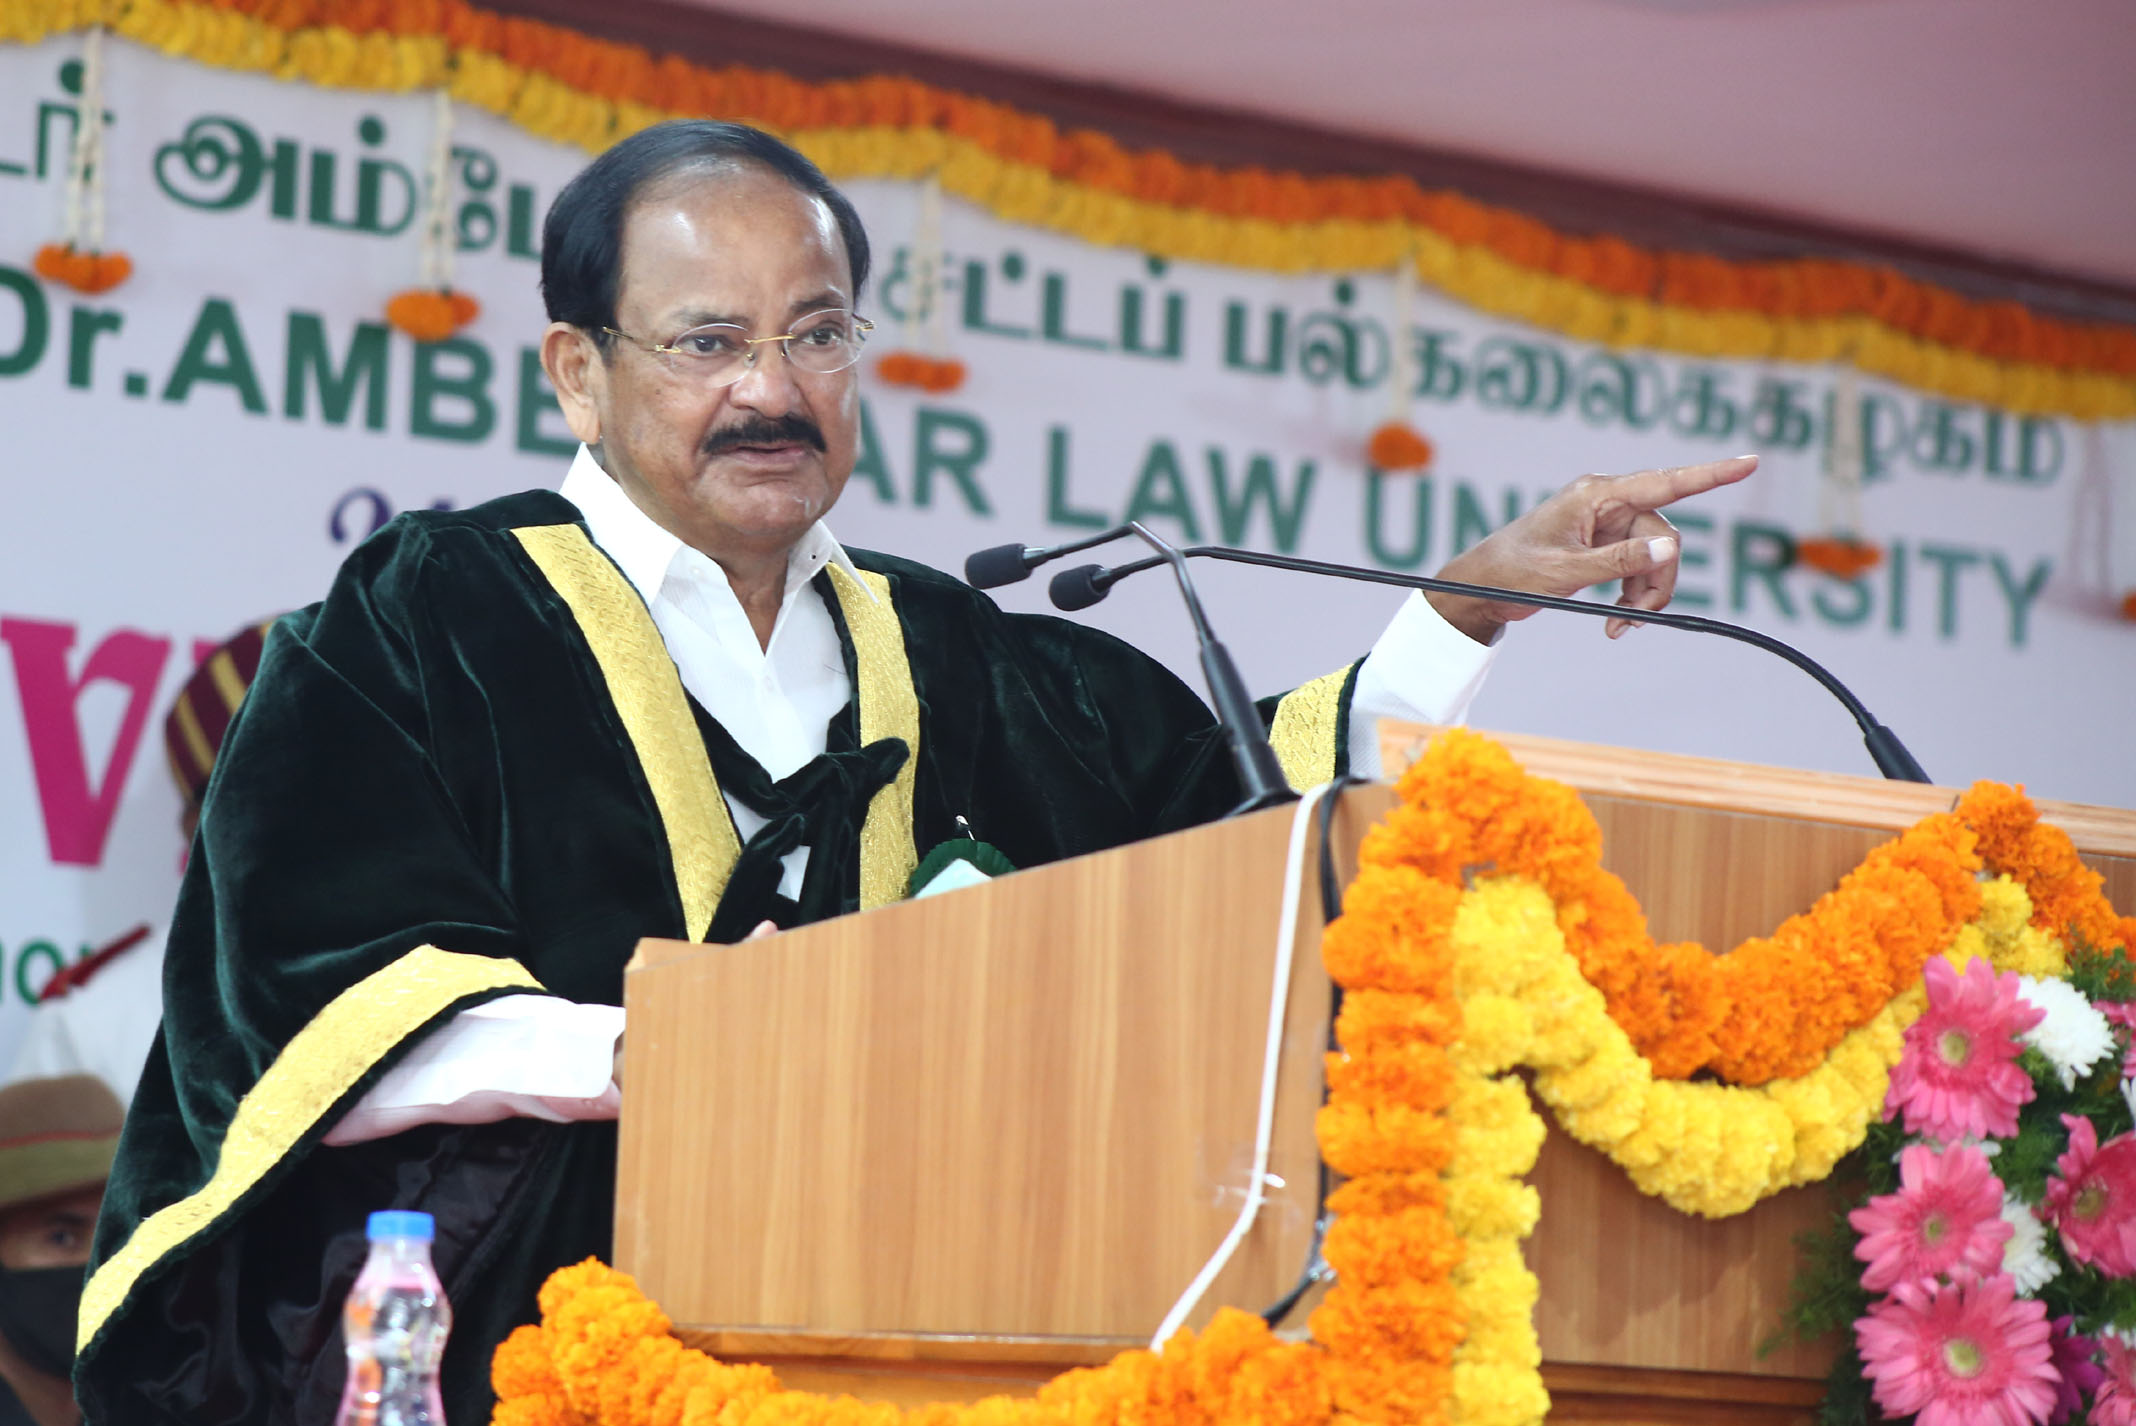 The Vice President, Shri M. Venkaiah Naidu addressing at the 11th Convocation of the Tamil Nadu Dr. Ambedkar Law University, in Chennai, Tamil Nadu on February 27, 2021.